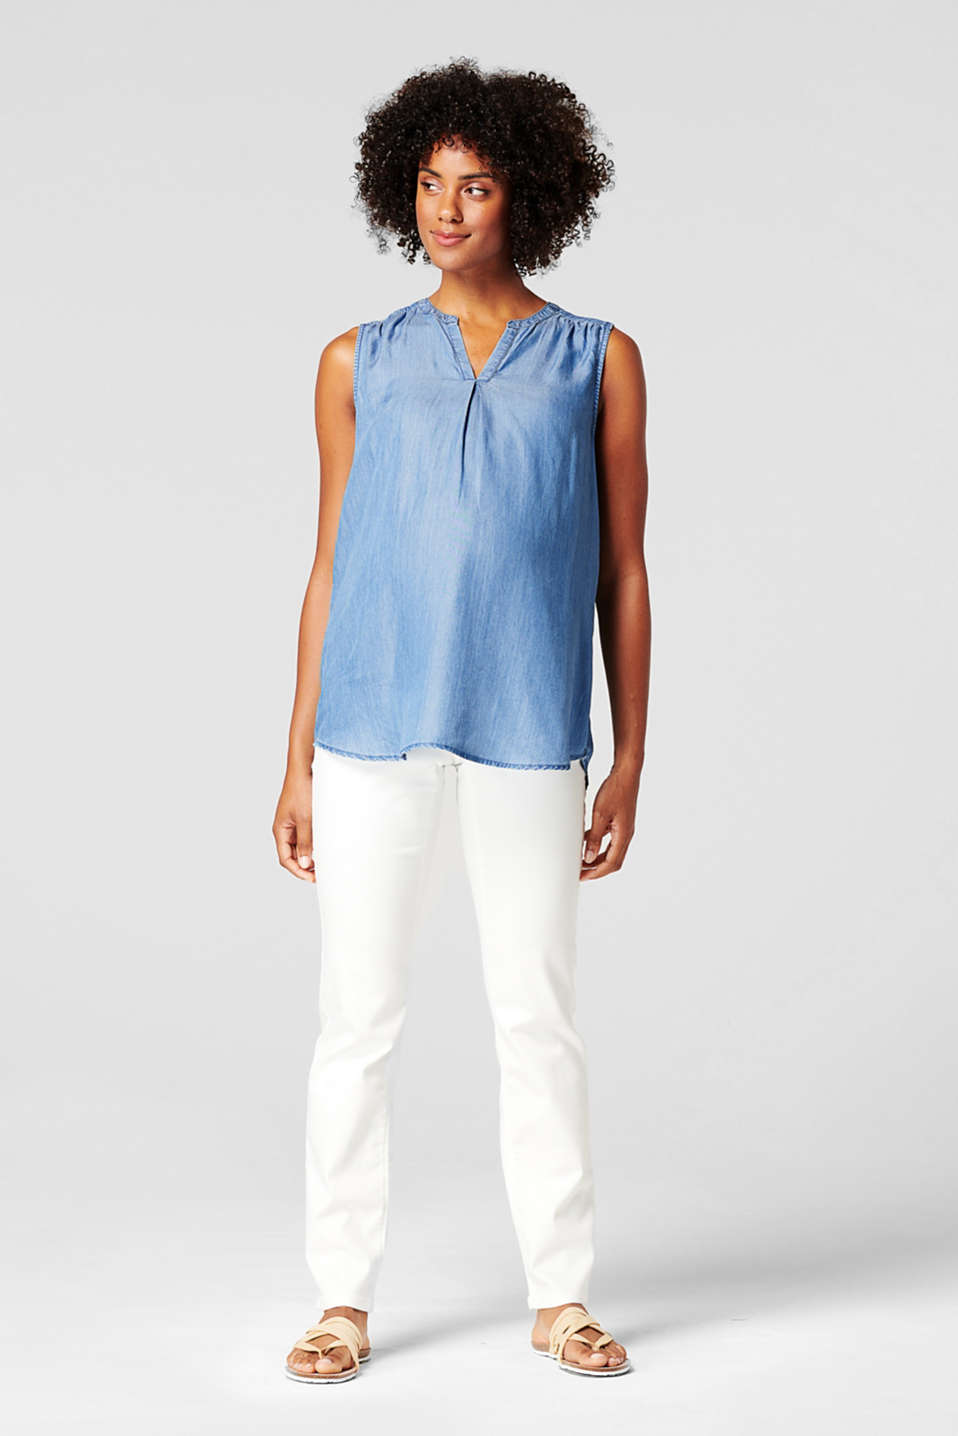 Esprit - Van TENCEL™: luchtige top in denim look